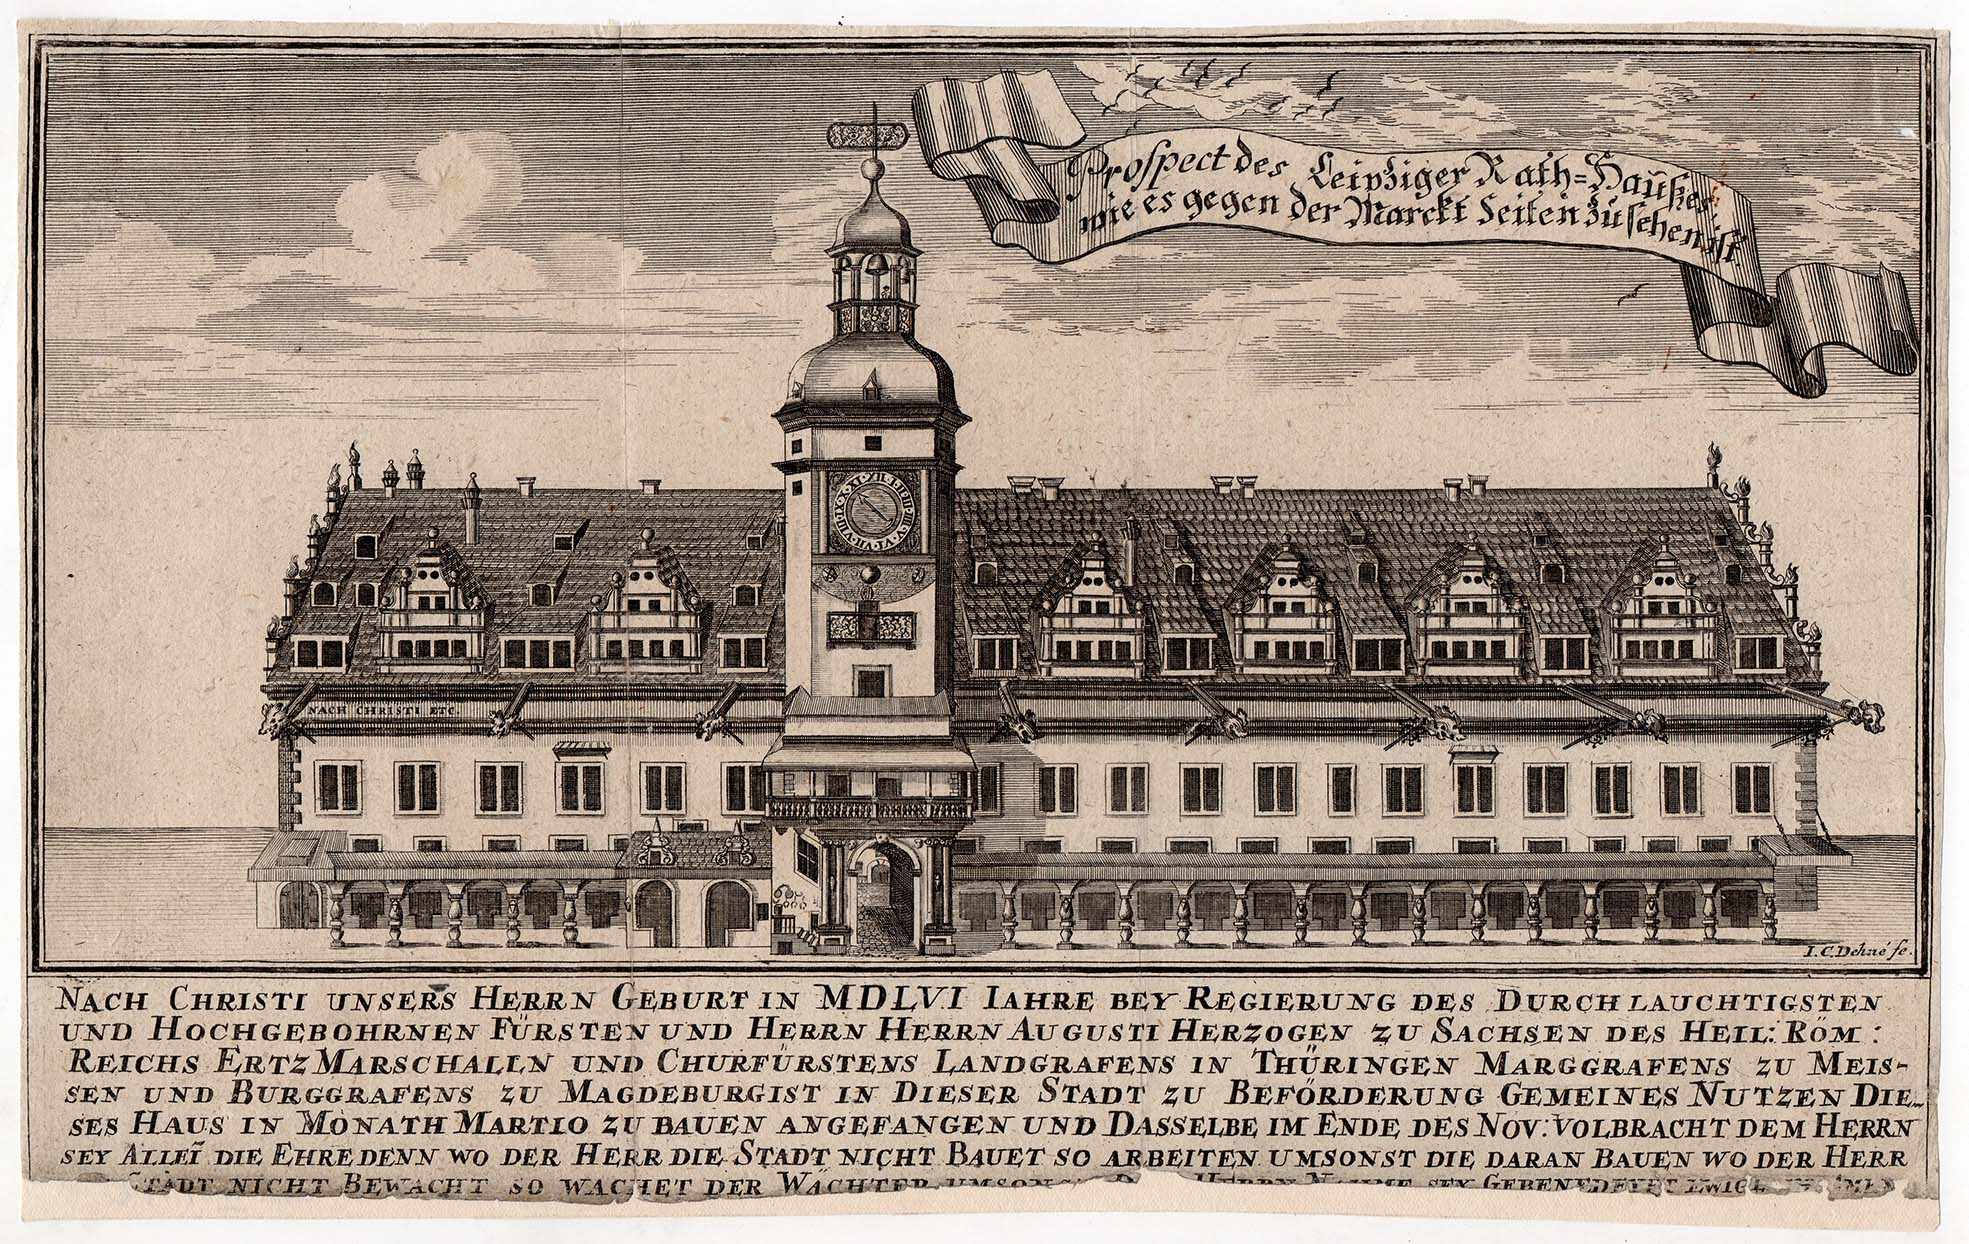 Etching of the Altes Rathaus (Old Town Hall) in Leipzig from 1672.